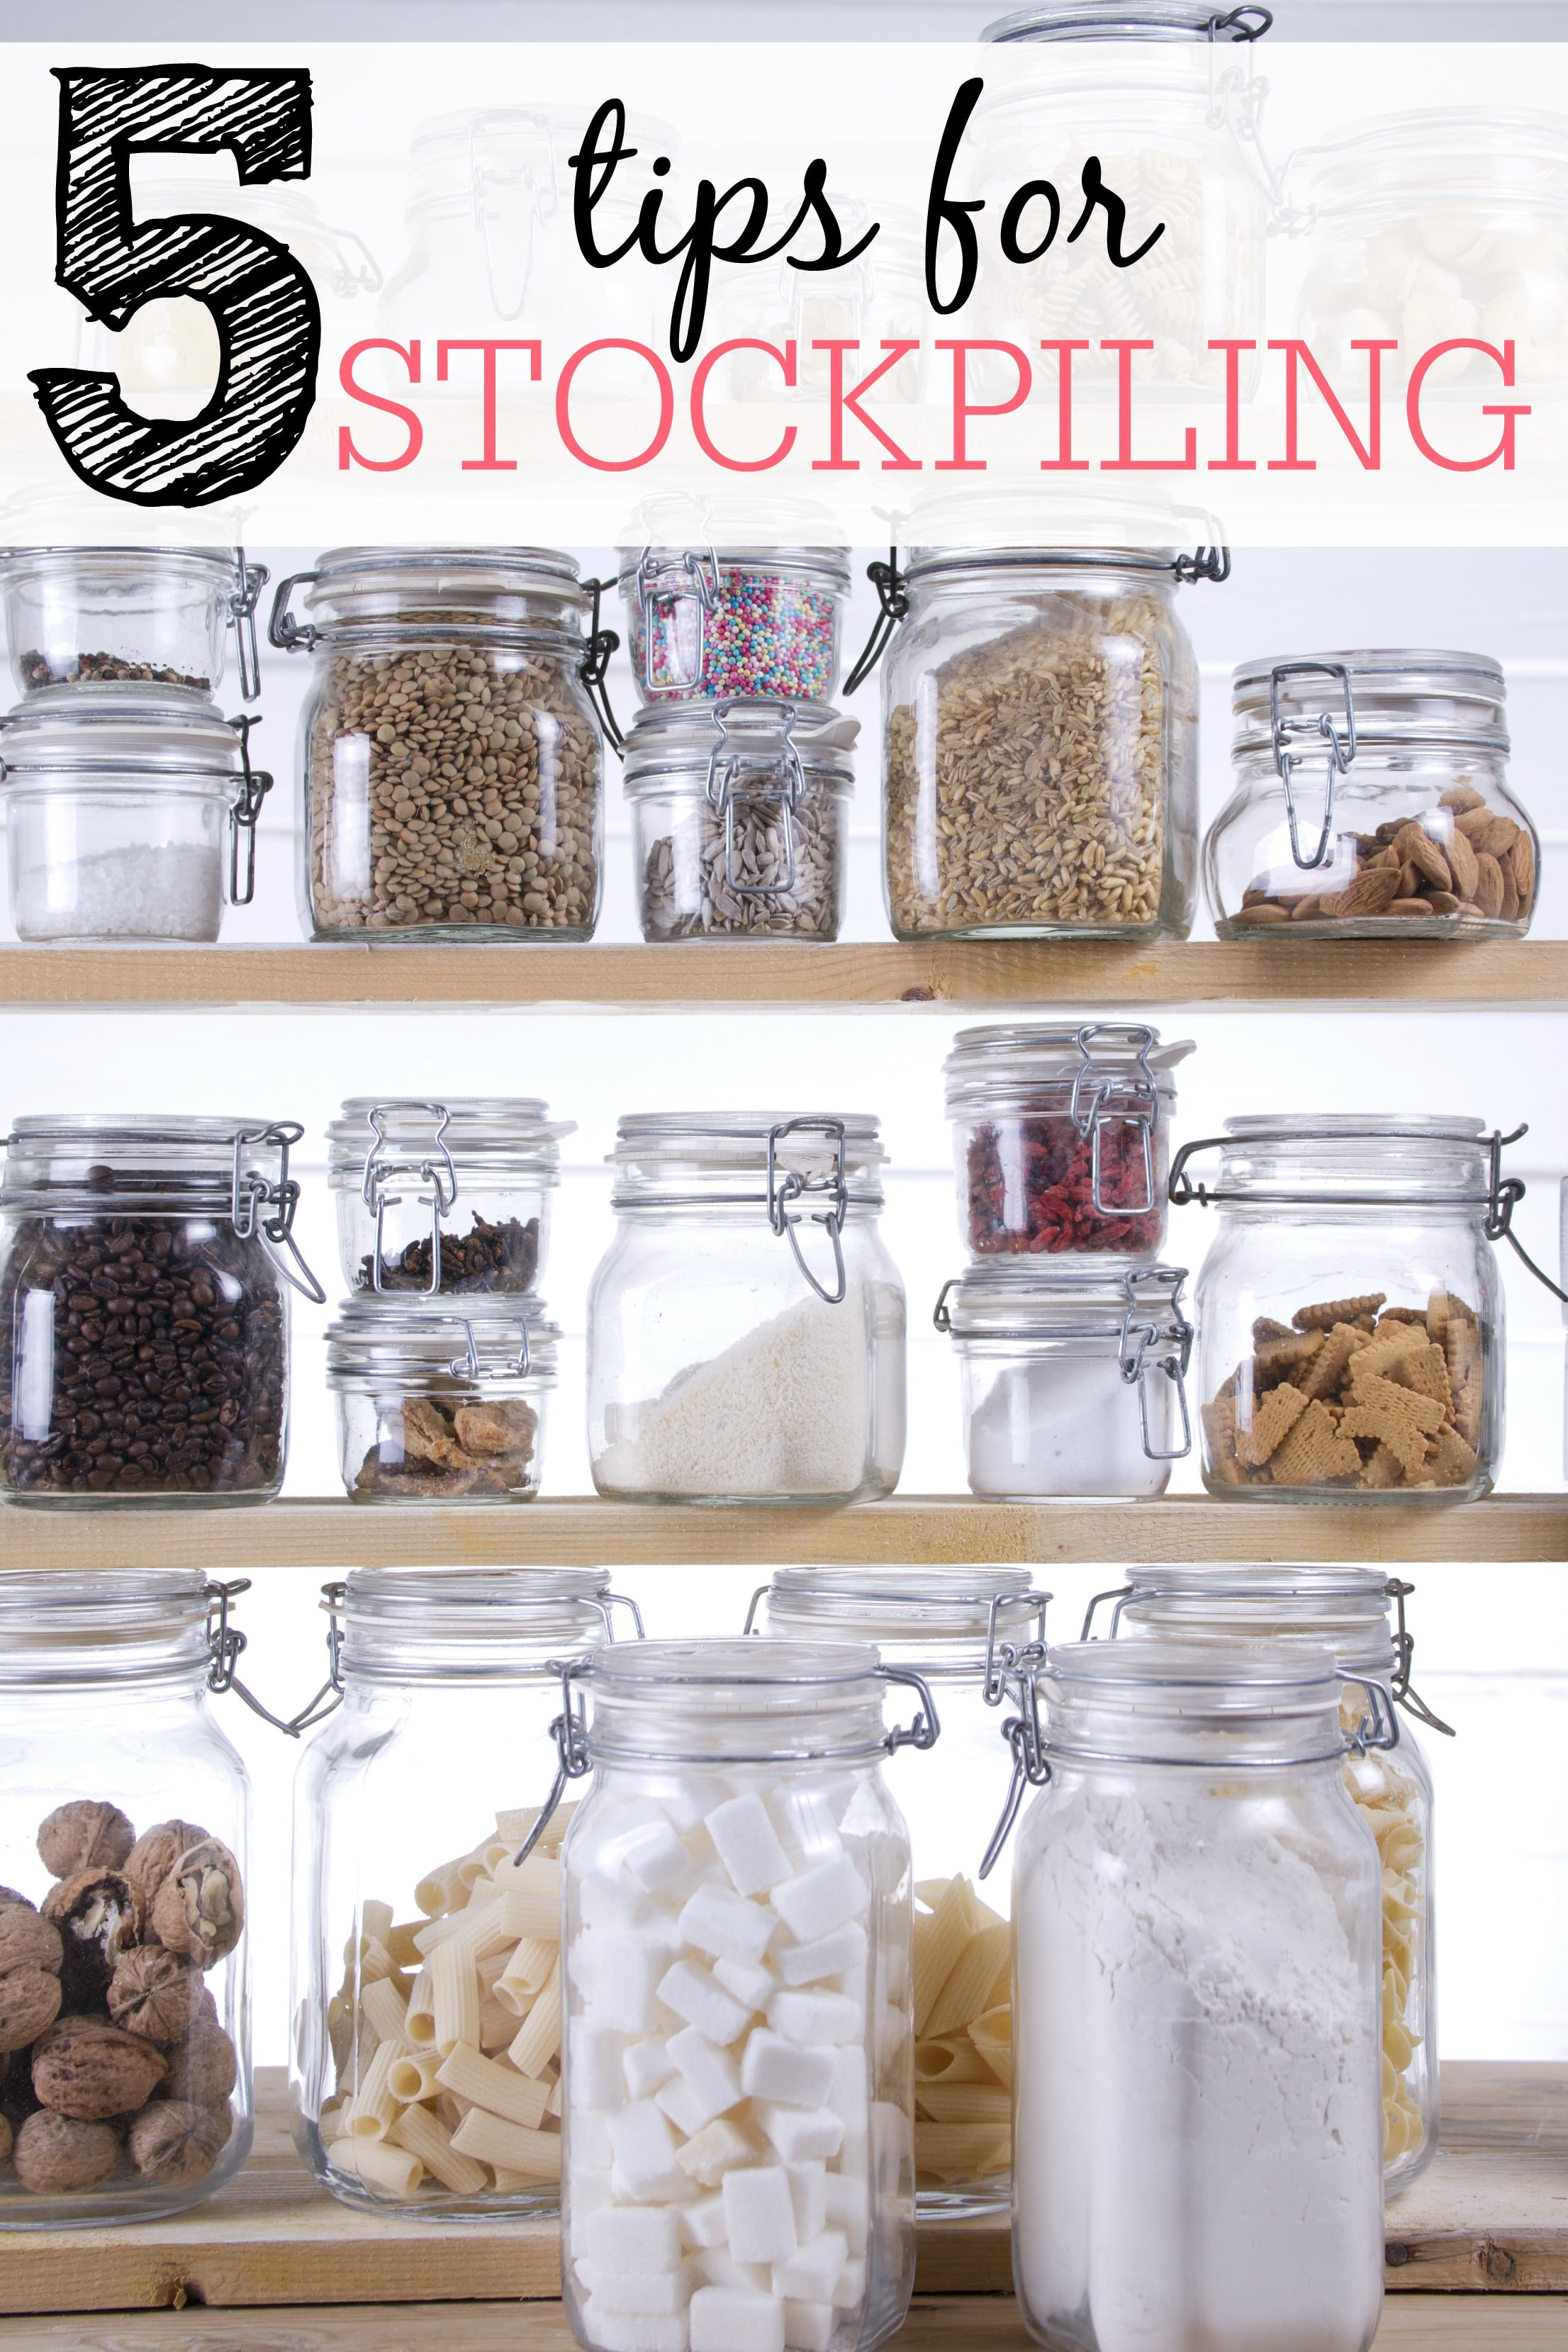 tips for stockpiling